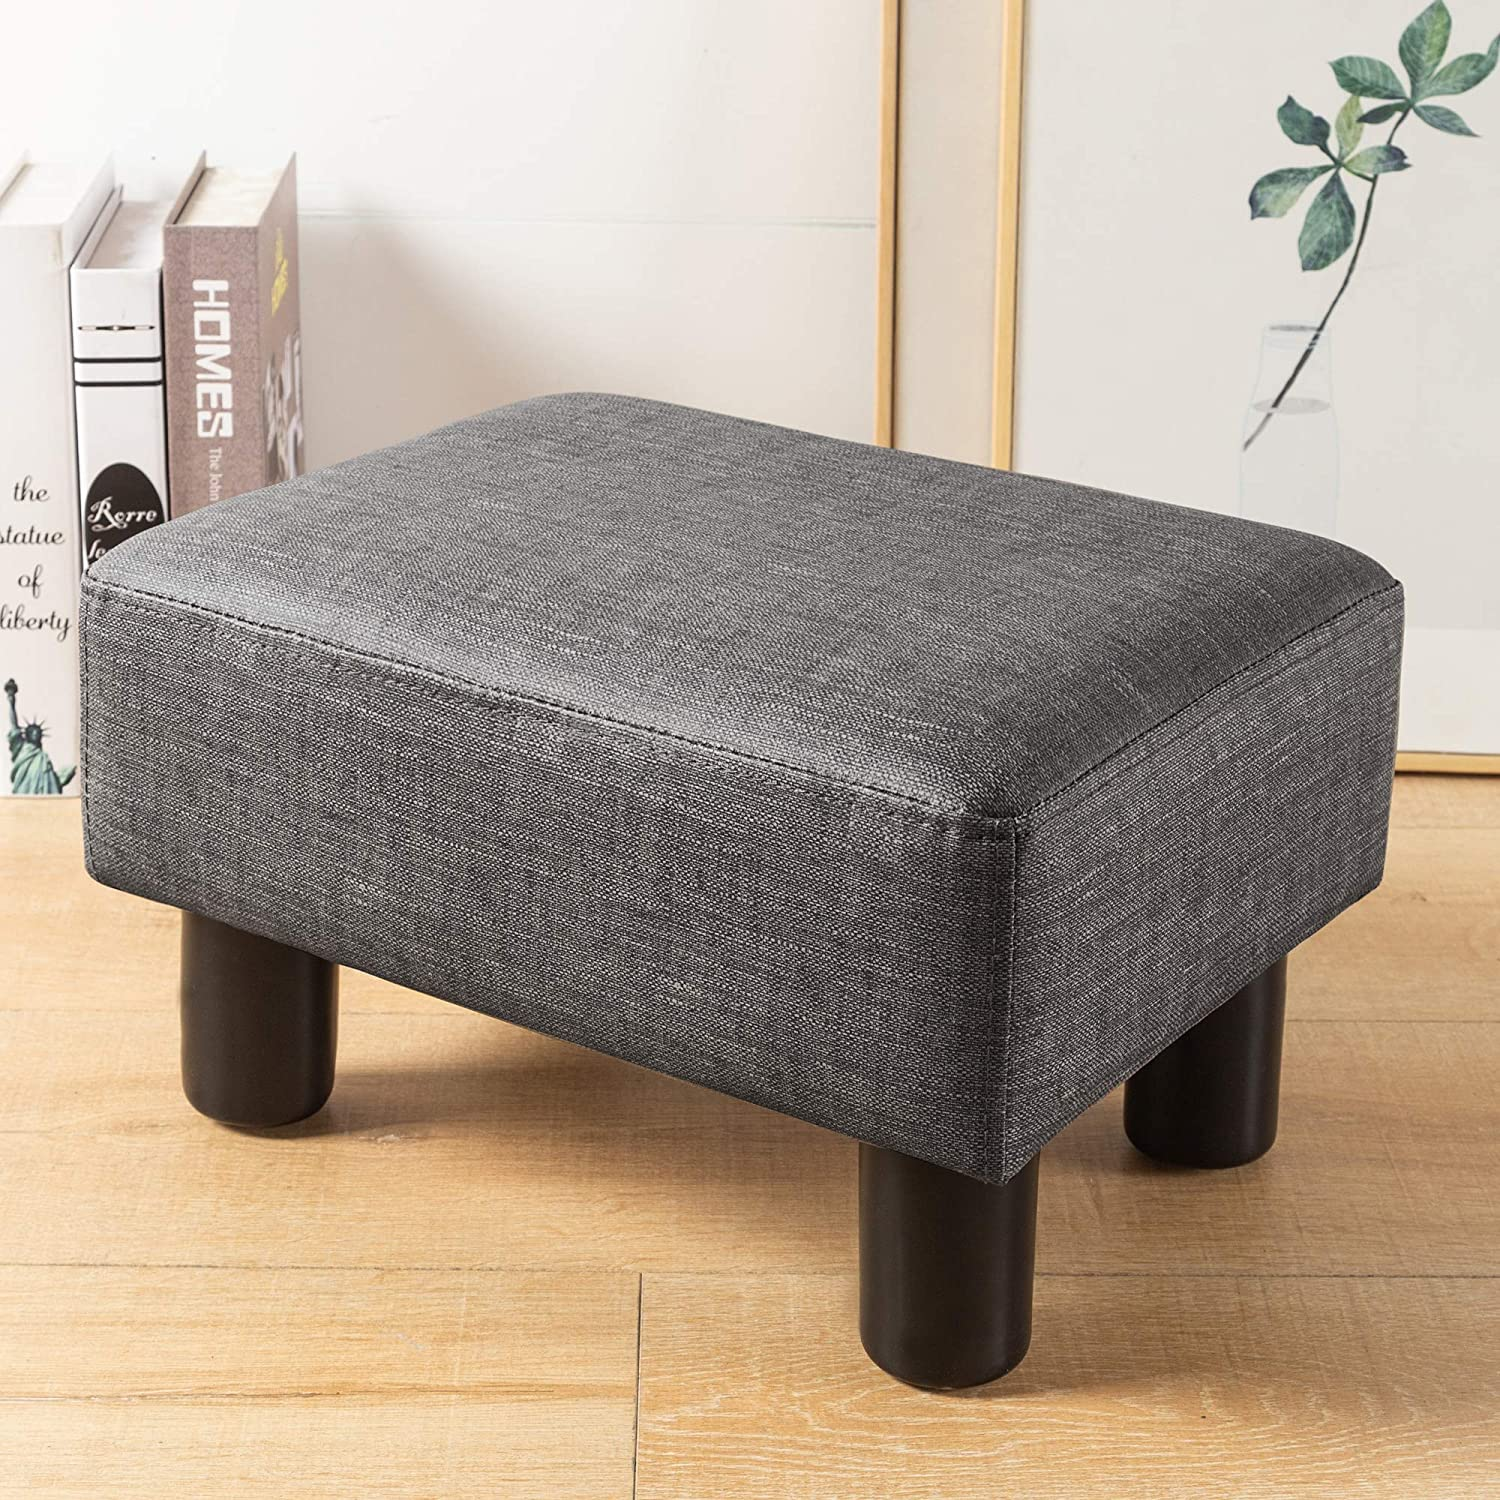 Small Rectangle Foot Stool, Gray PU Leather Fabric Footrest Small Ottoman Stool with Non-Skid Plastic Legs, Modern Rectangle Footrest Small Step Stool Ottoman for Couch, Desk, Office, Living Room